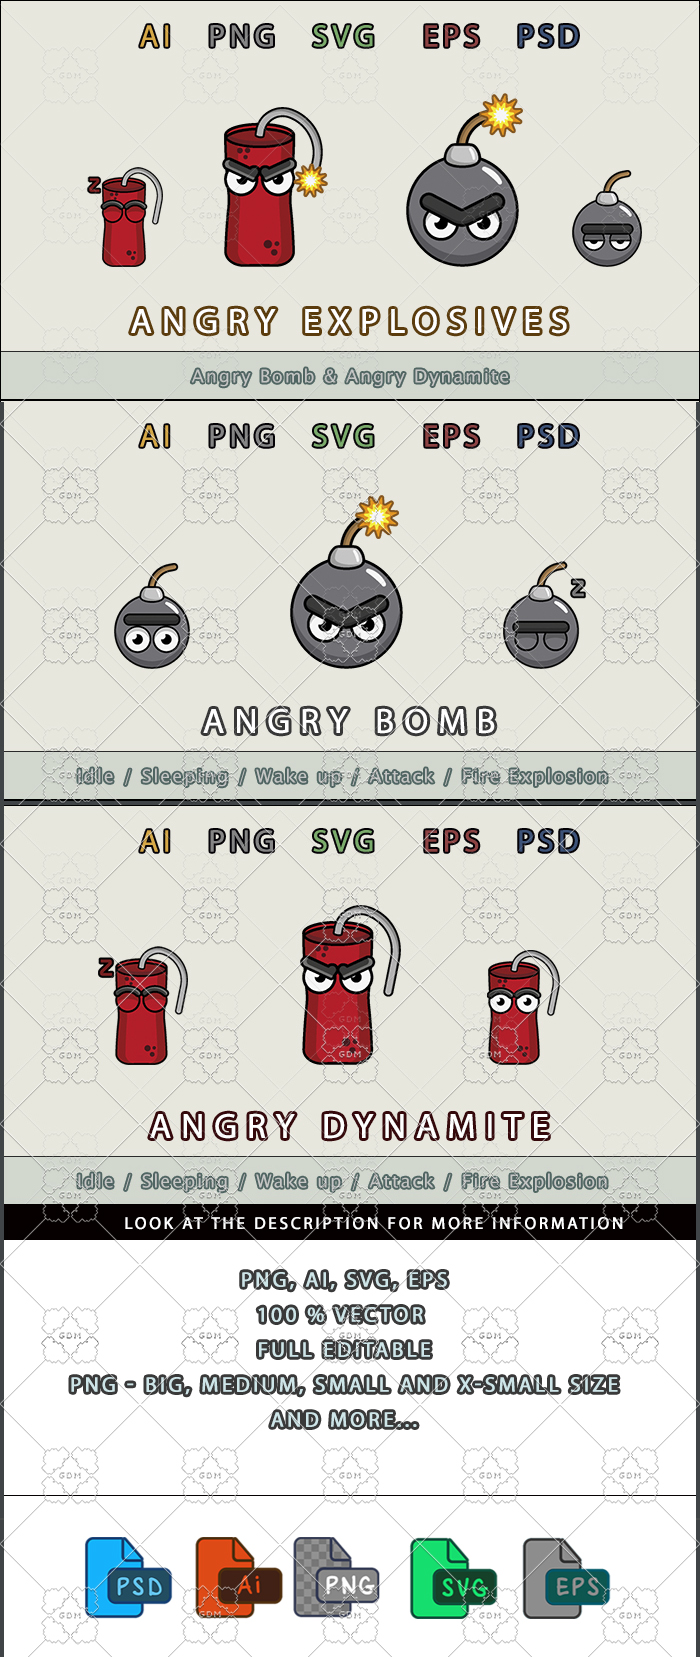 Angry explosives